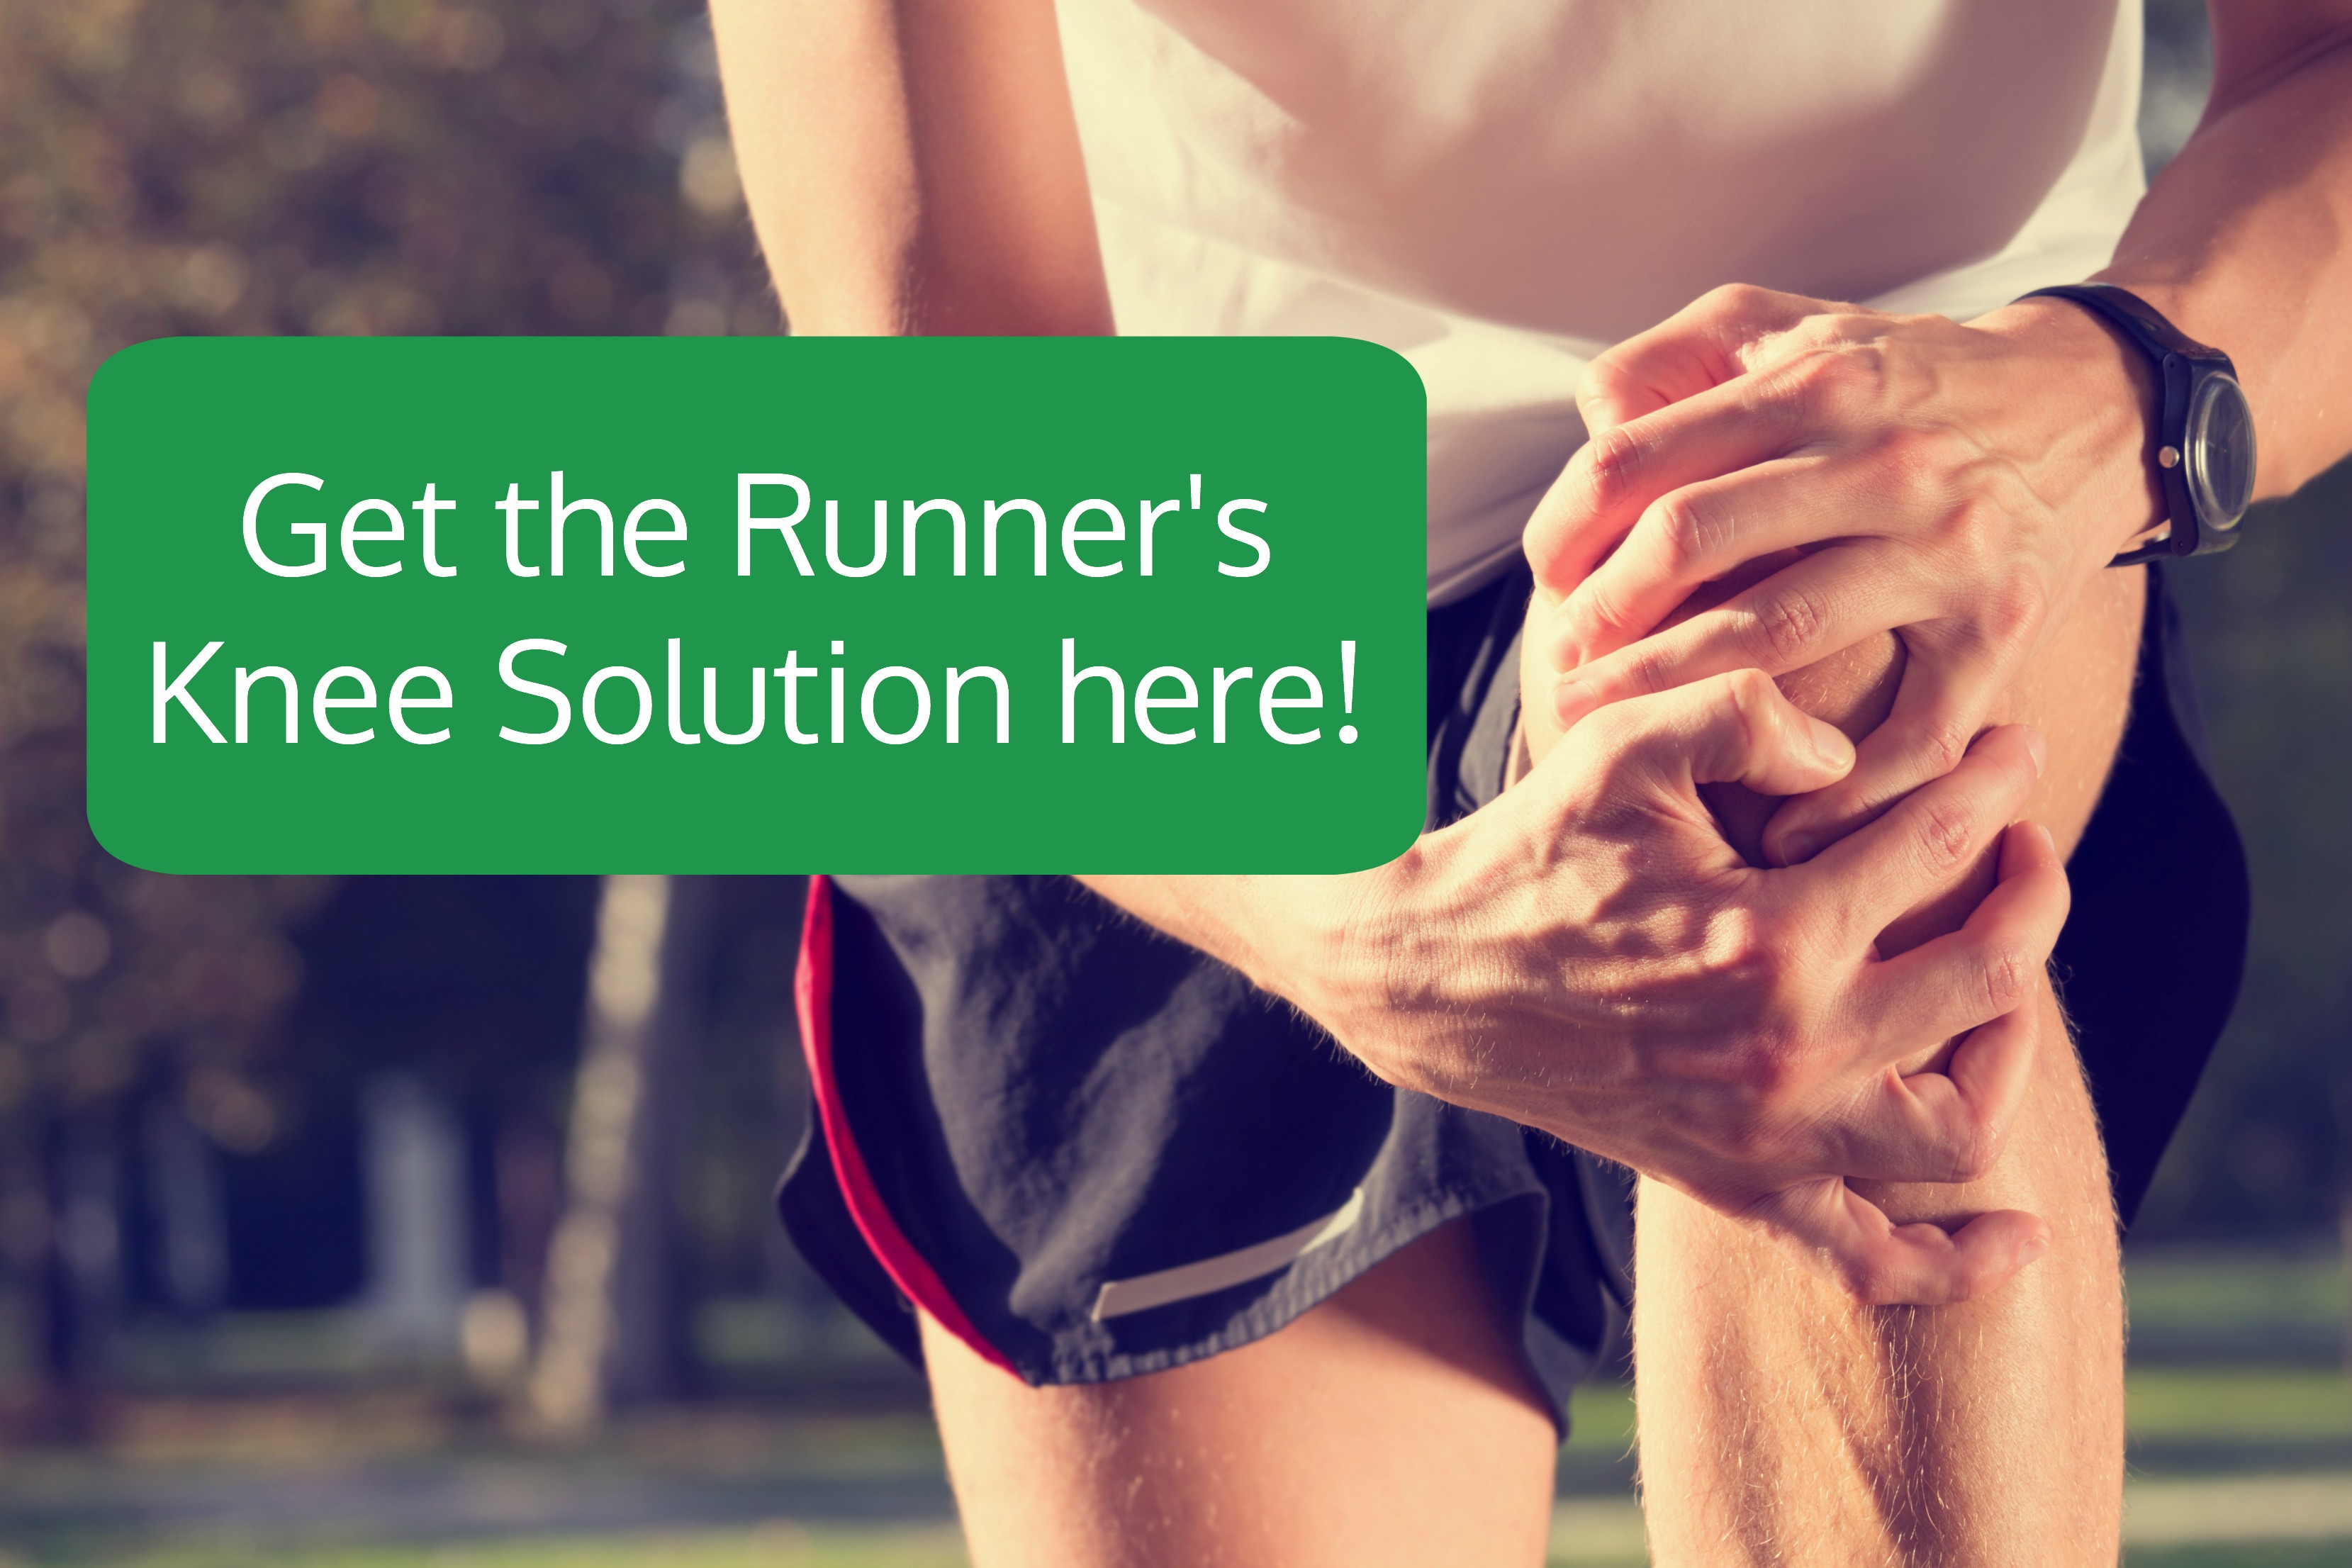 Click here to get the Runner's Knee Solution!